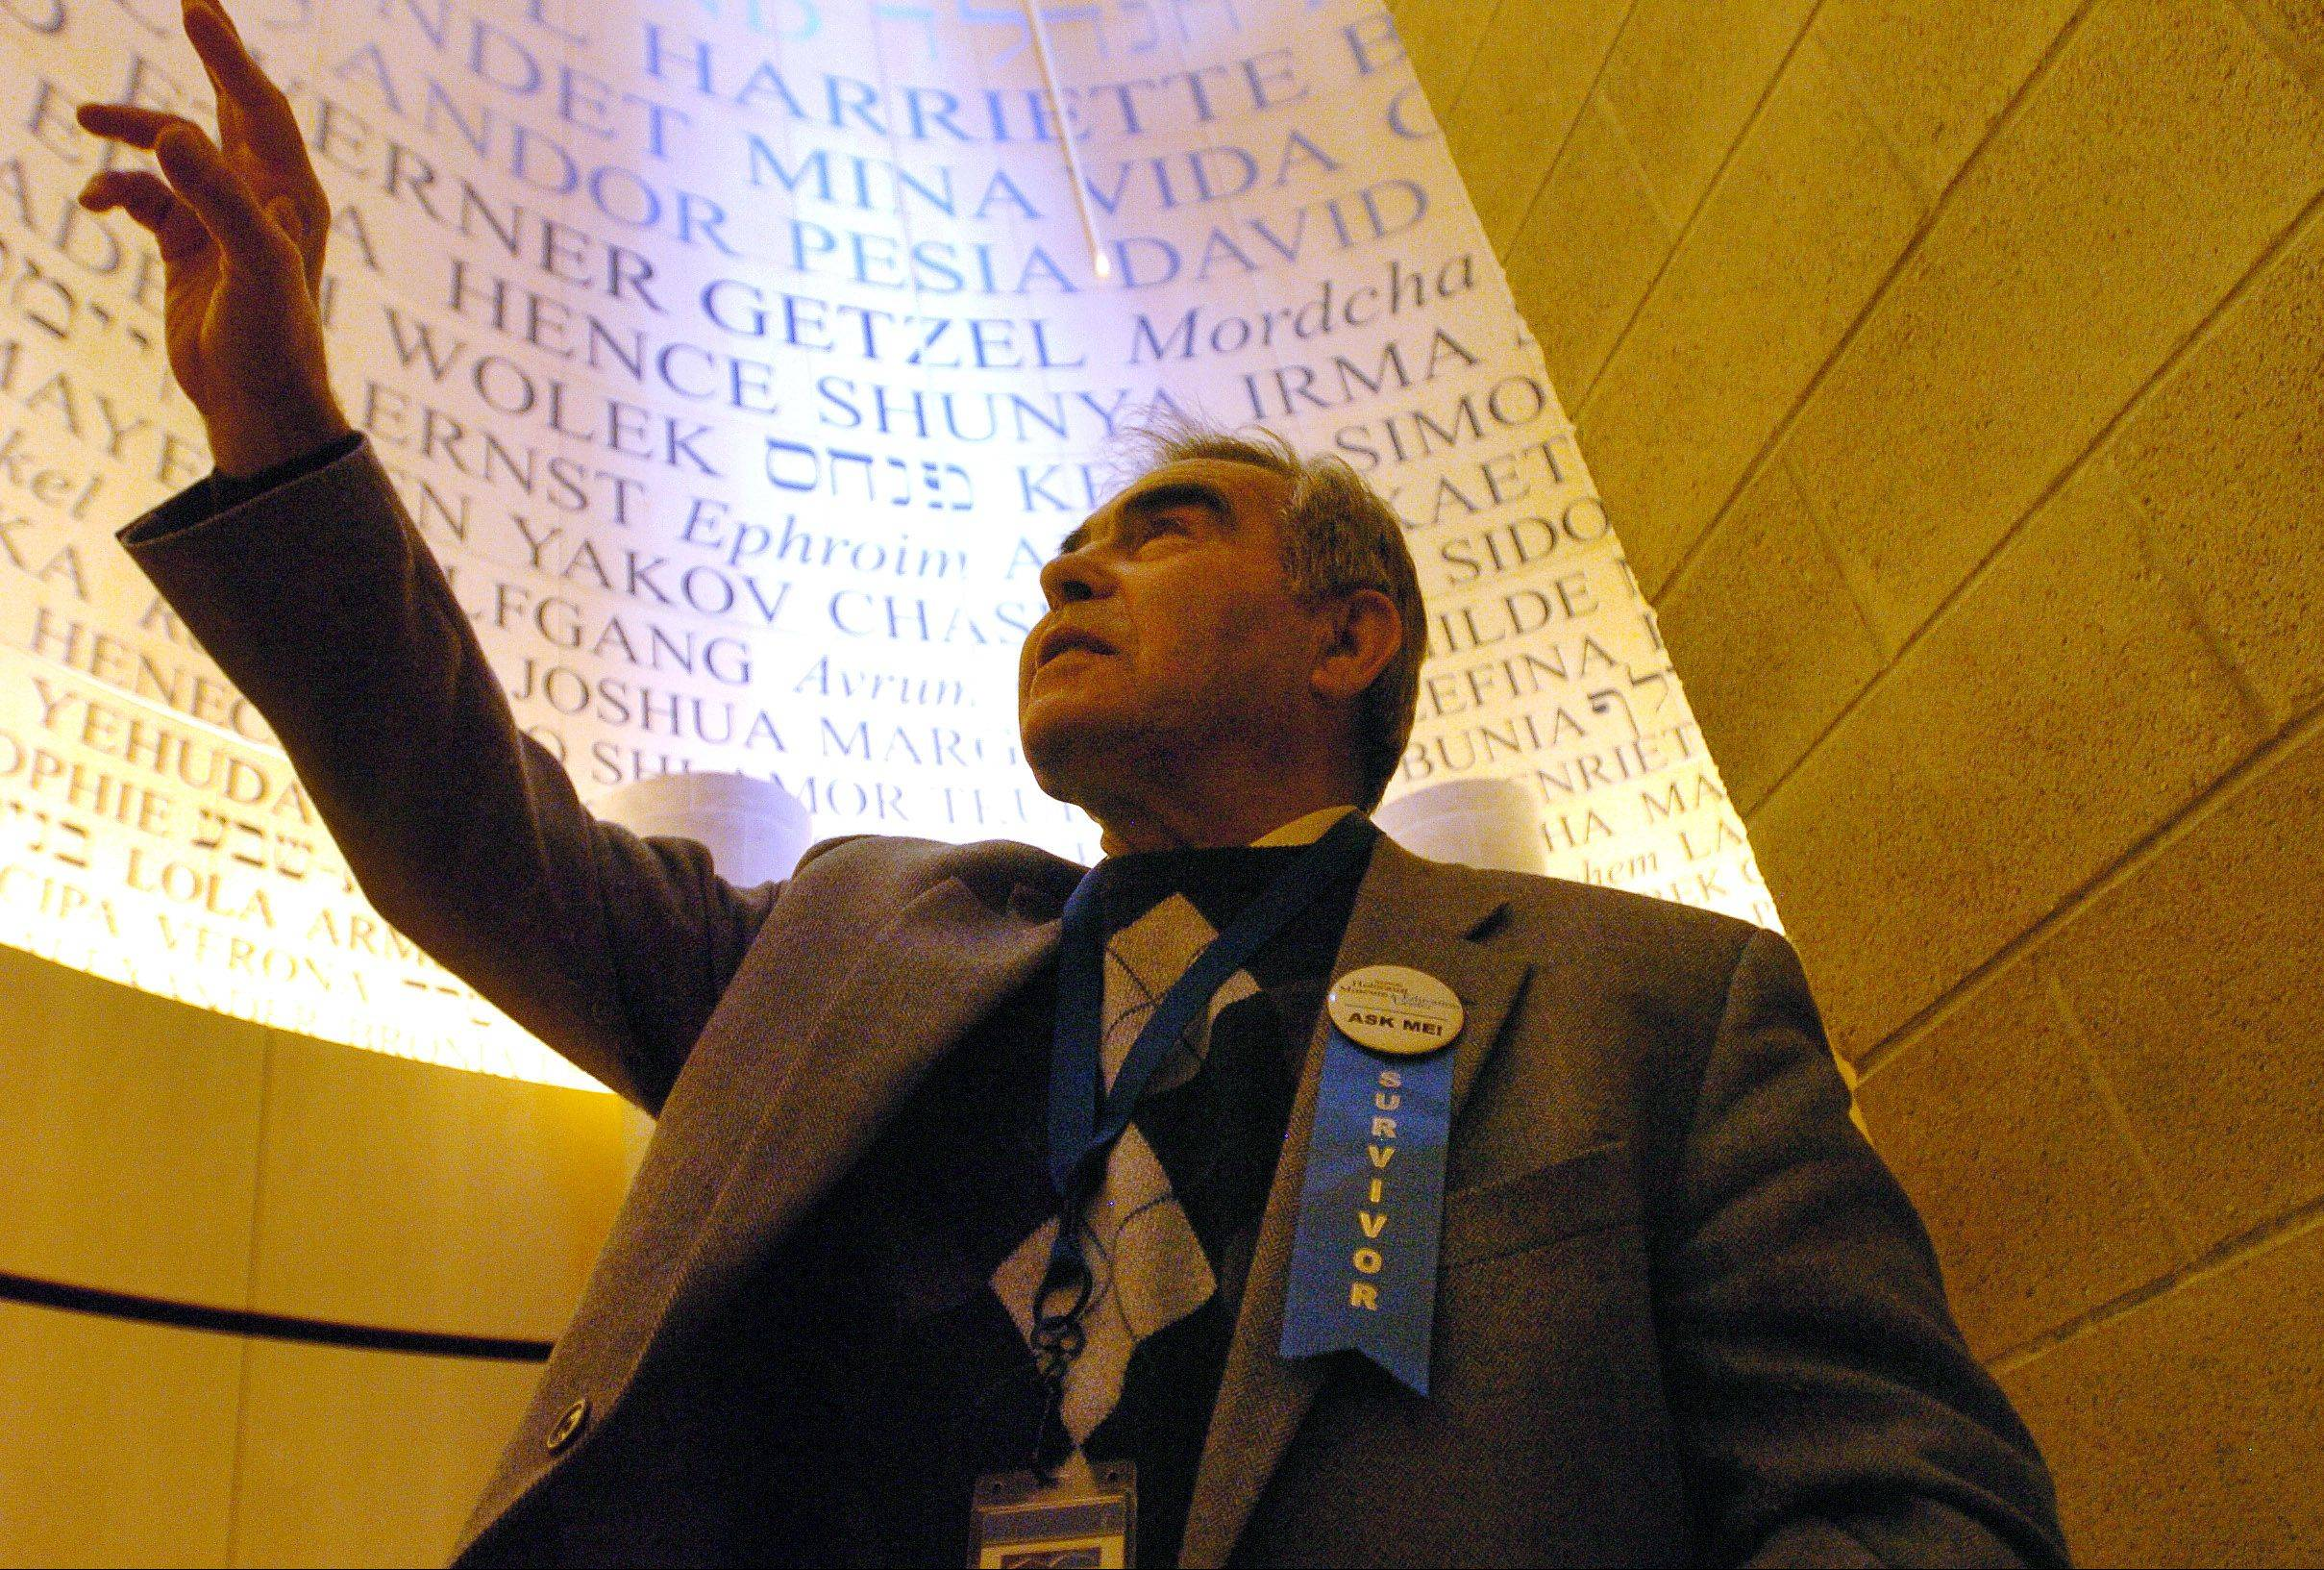 Holocaust survivor Adam Paluch of Mundelein in the Room Of Remembrance at the Illinois Holocaust Museum & Education Center, which pays homage to the six million Jews and millions of others murdered during the Holocaust.